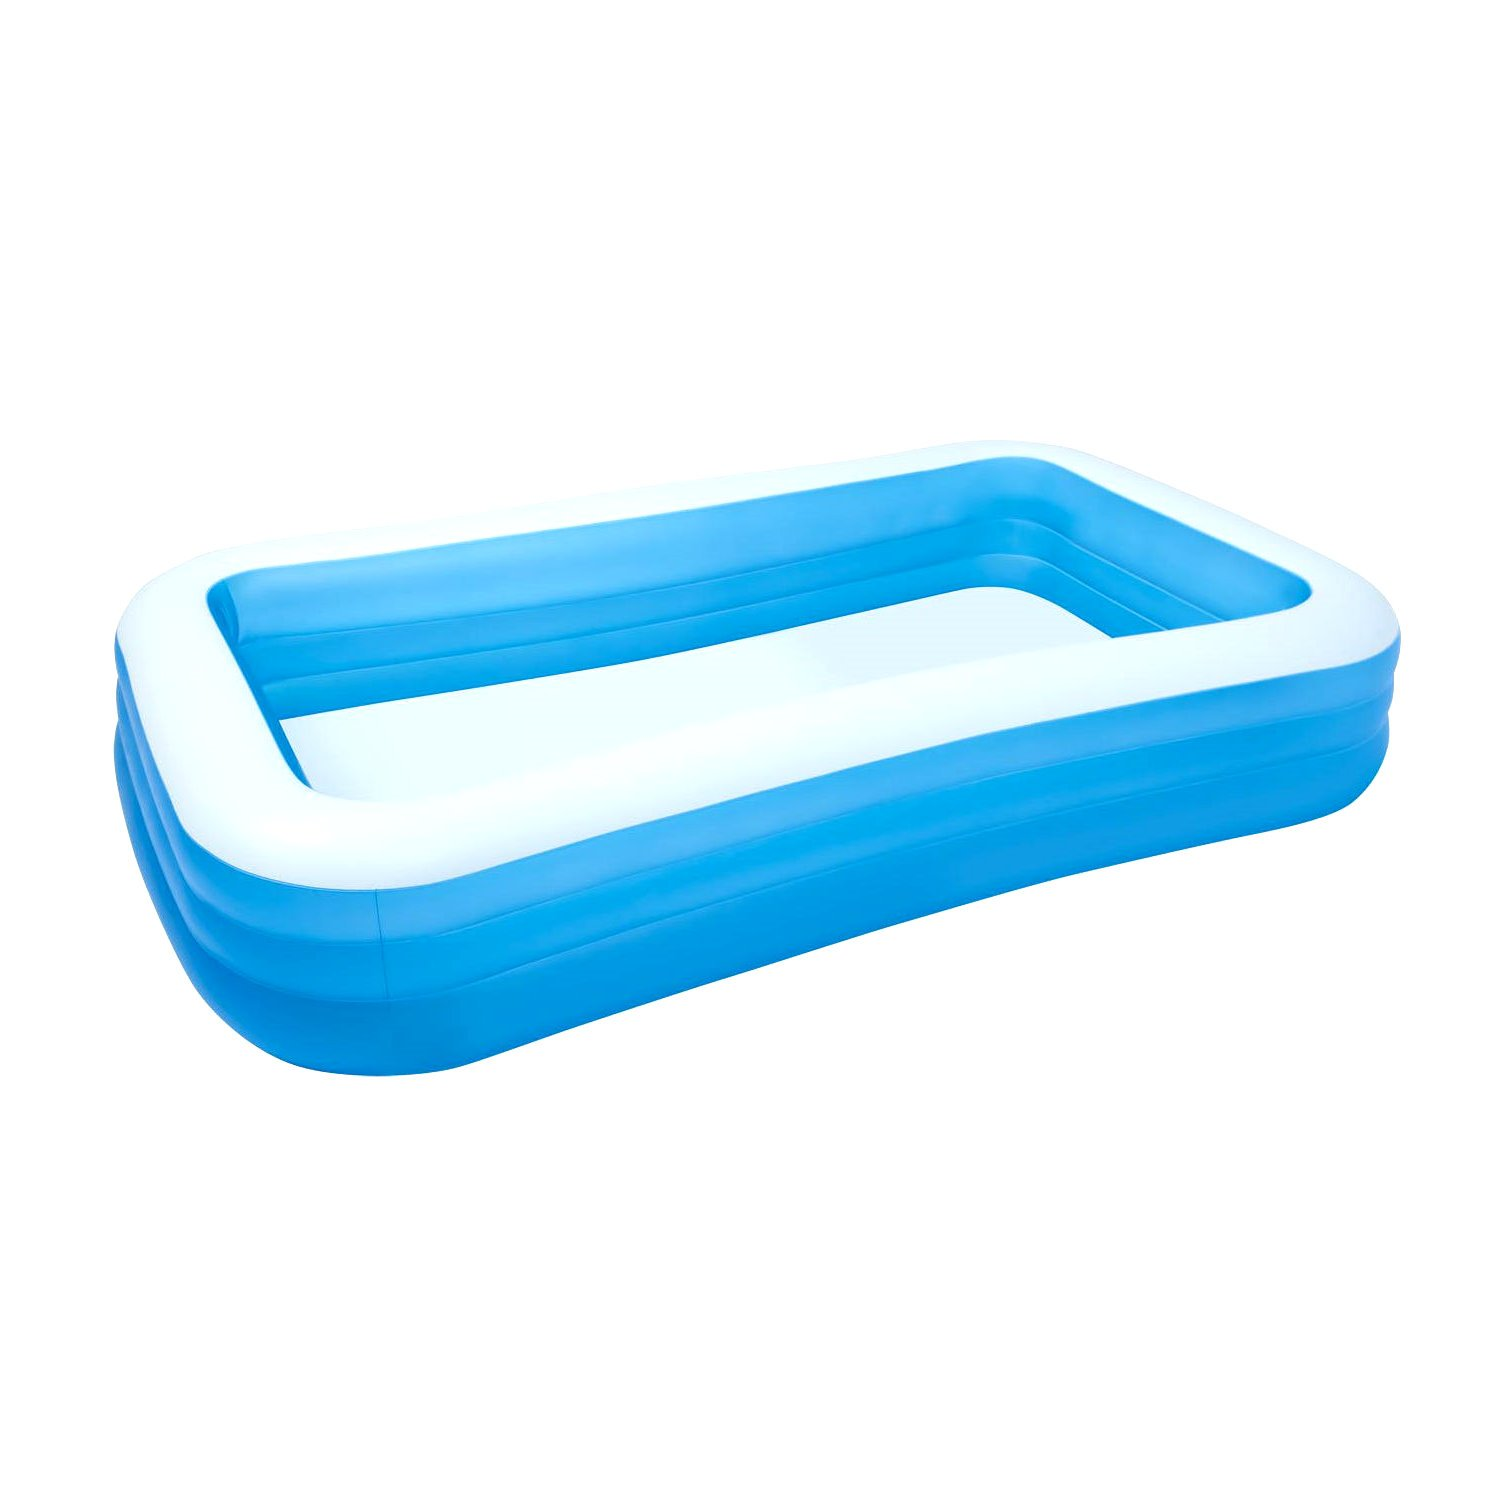 Kids-Inflatable-Pool. This Kiddie Blow Up Above Ground Swimming Pool Is Great For Toddlers, Children To Have Outdoor Water Fun With Slide, Toys, Floats. Family Lounge Center 120'' x 72'' x 22''.